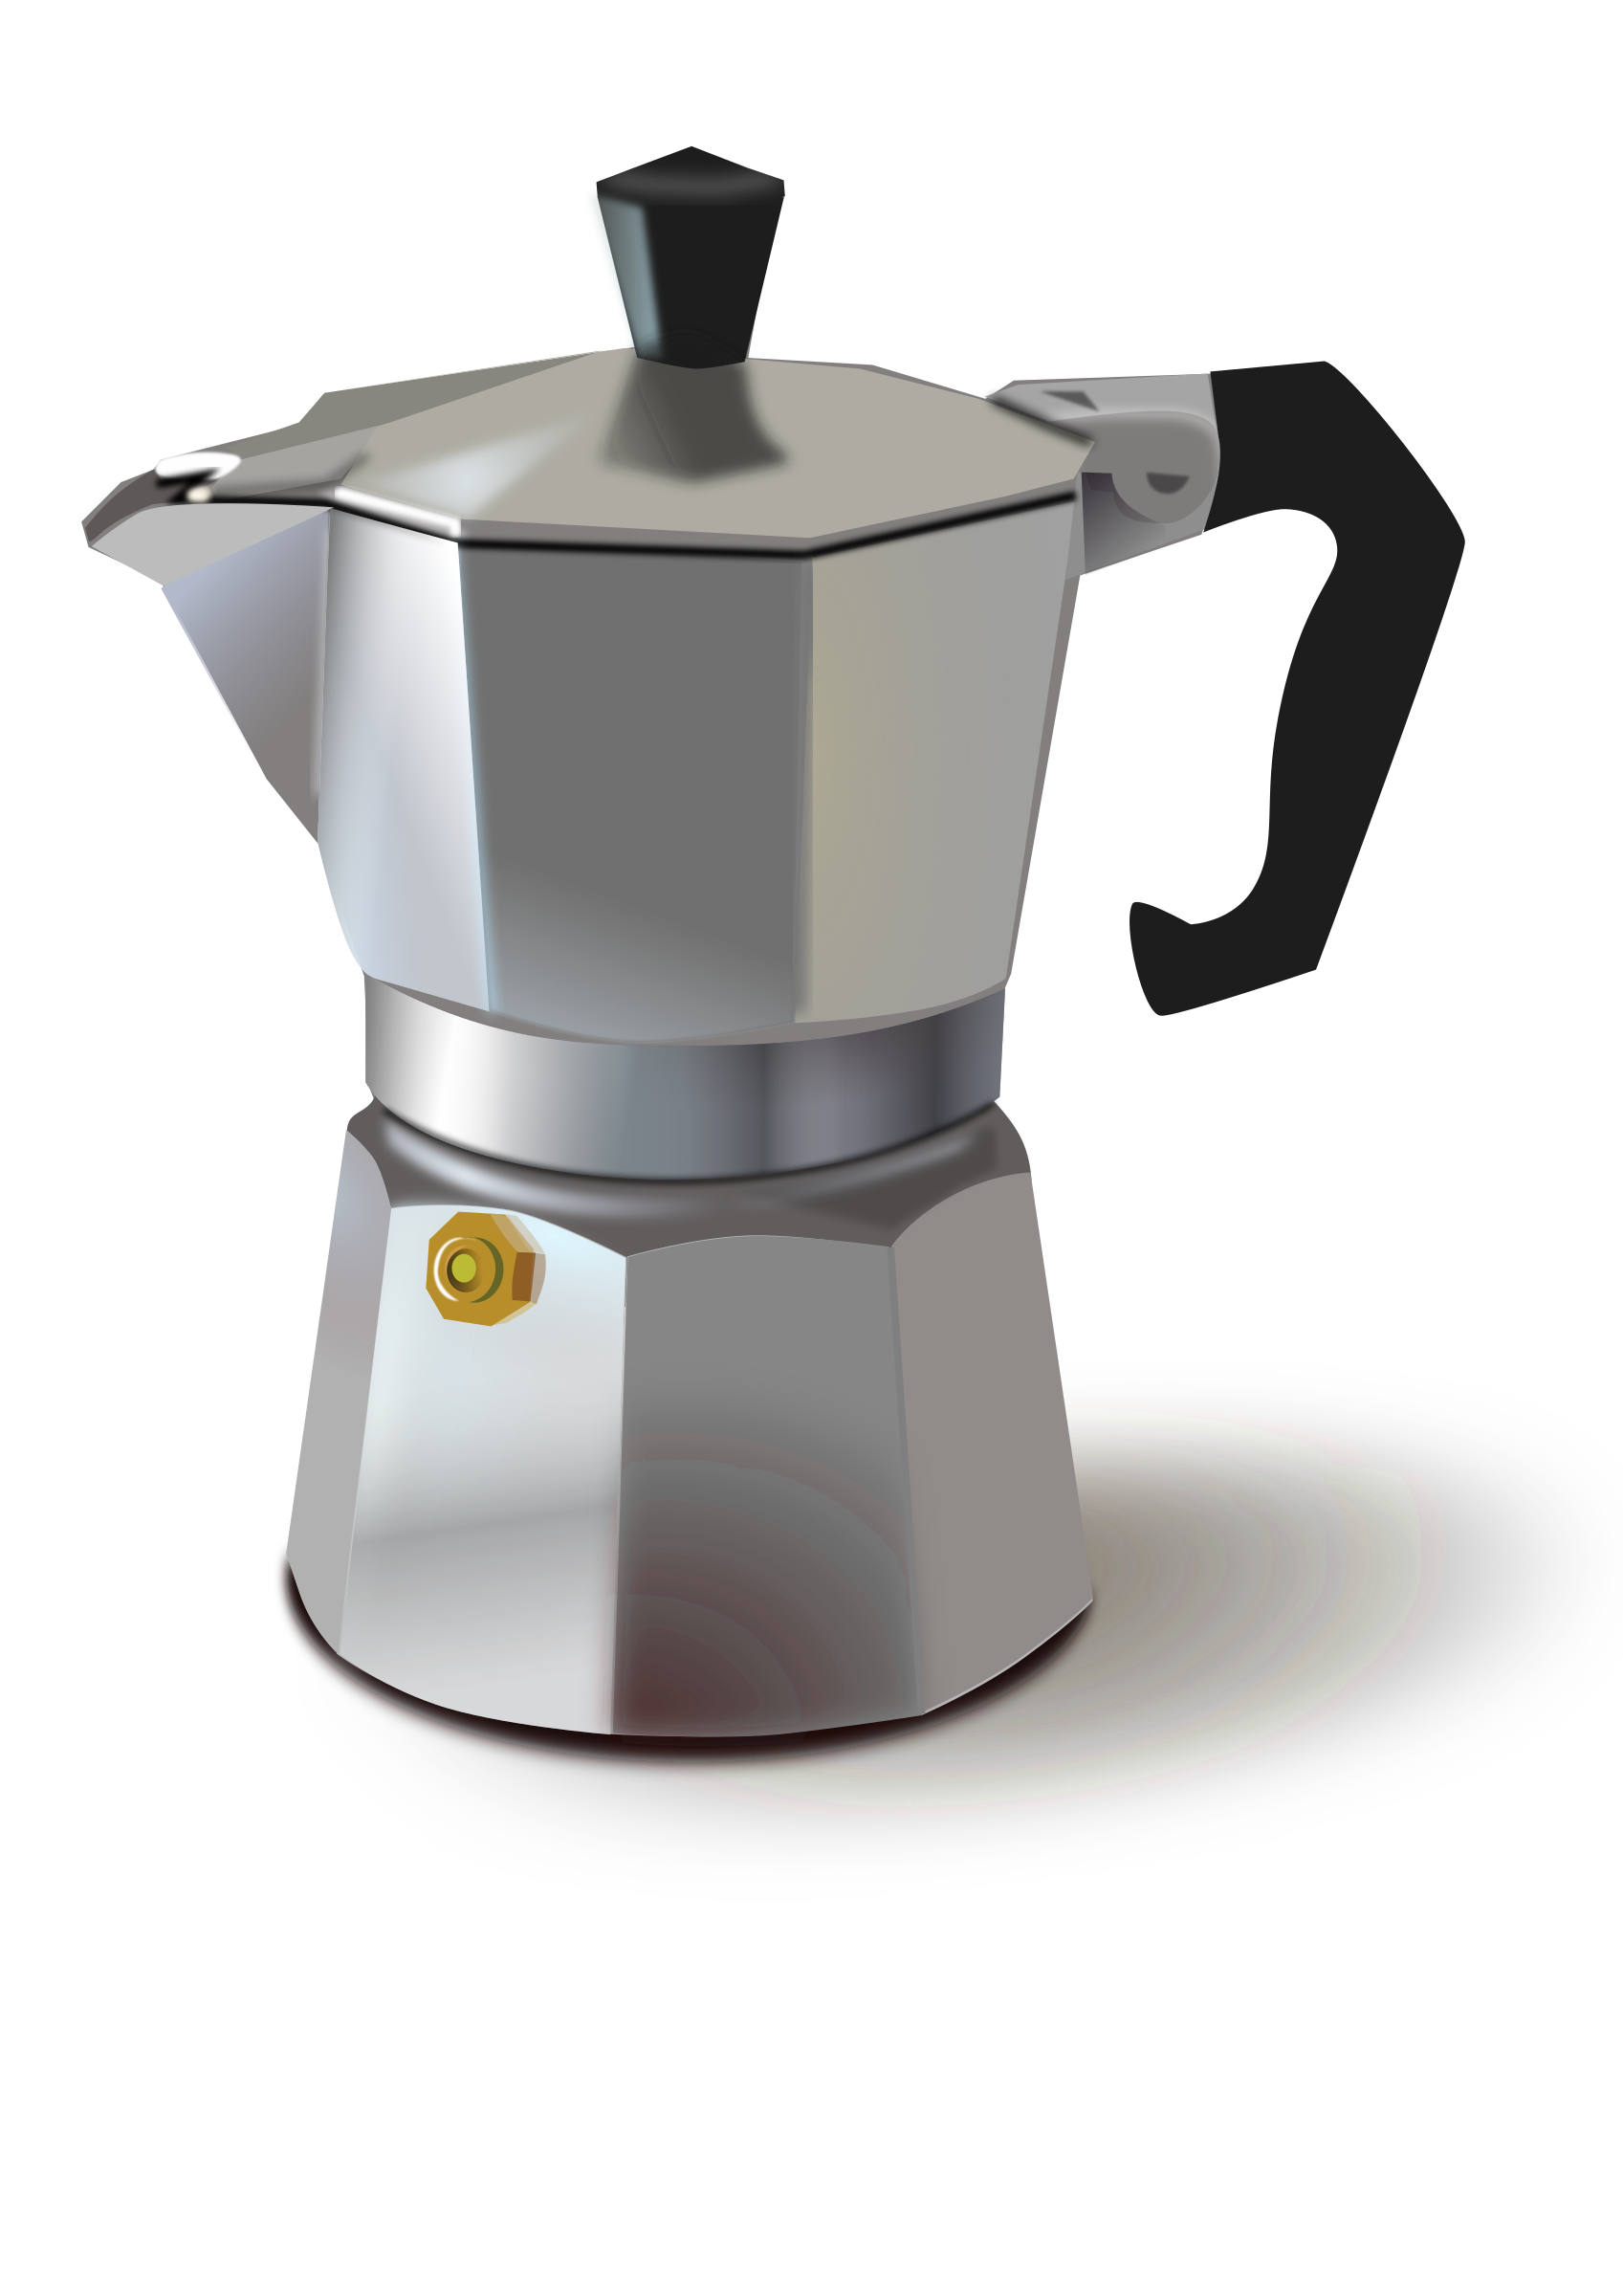 Clipart italian coffee maker How to make coffee with a coffee maker